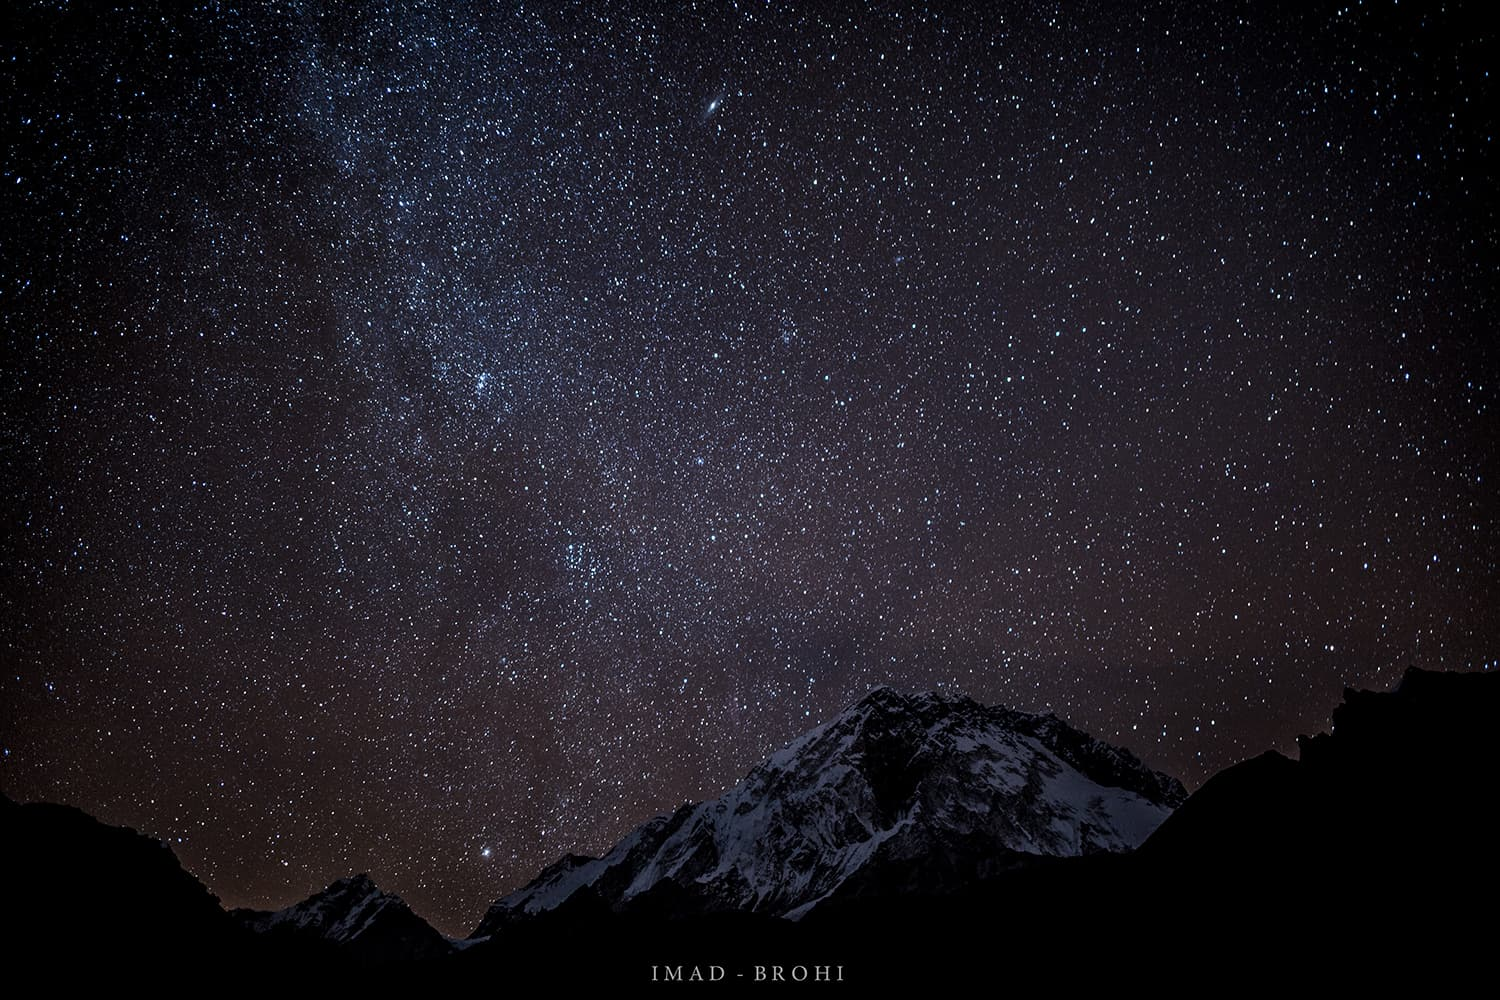 Day 8: Night falls on Lobuche Camp (4,900m). Stars and the galaxy of Andromeda light up the sky over Nuptse (7,861m). We are now too close to Nuptse which is blocking our view of Mount Everest.